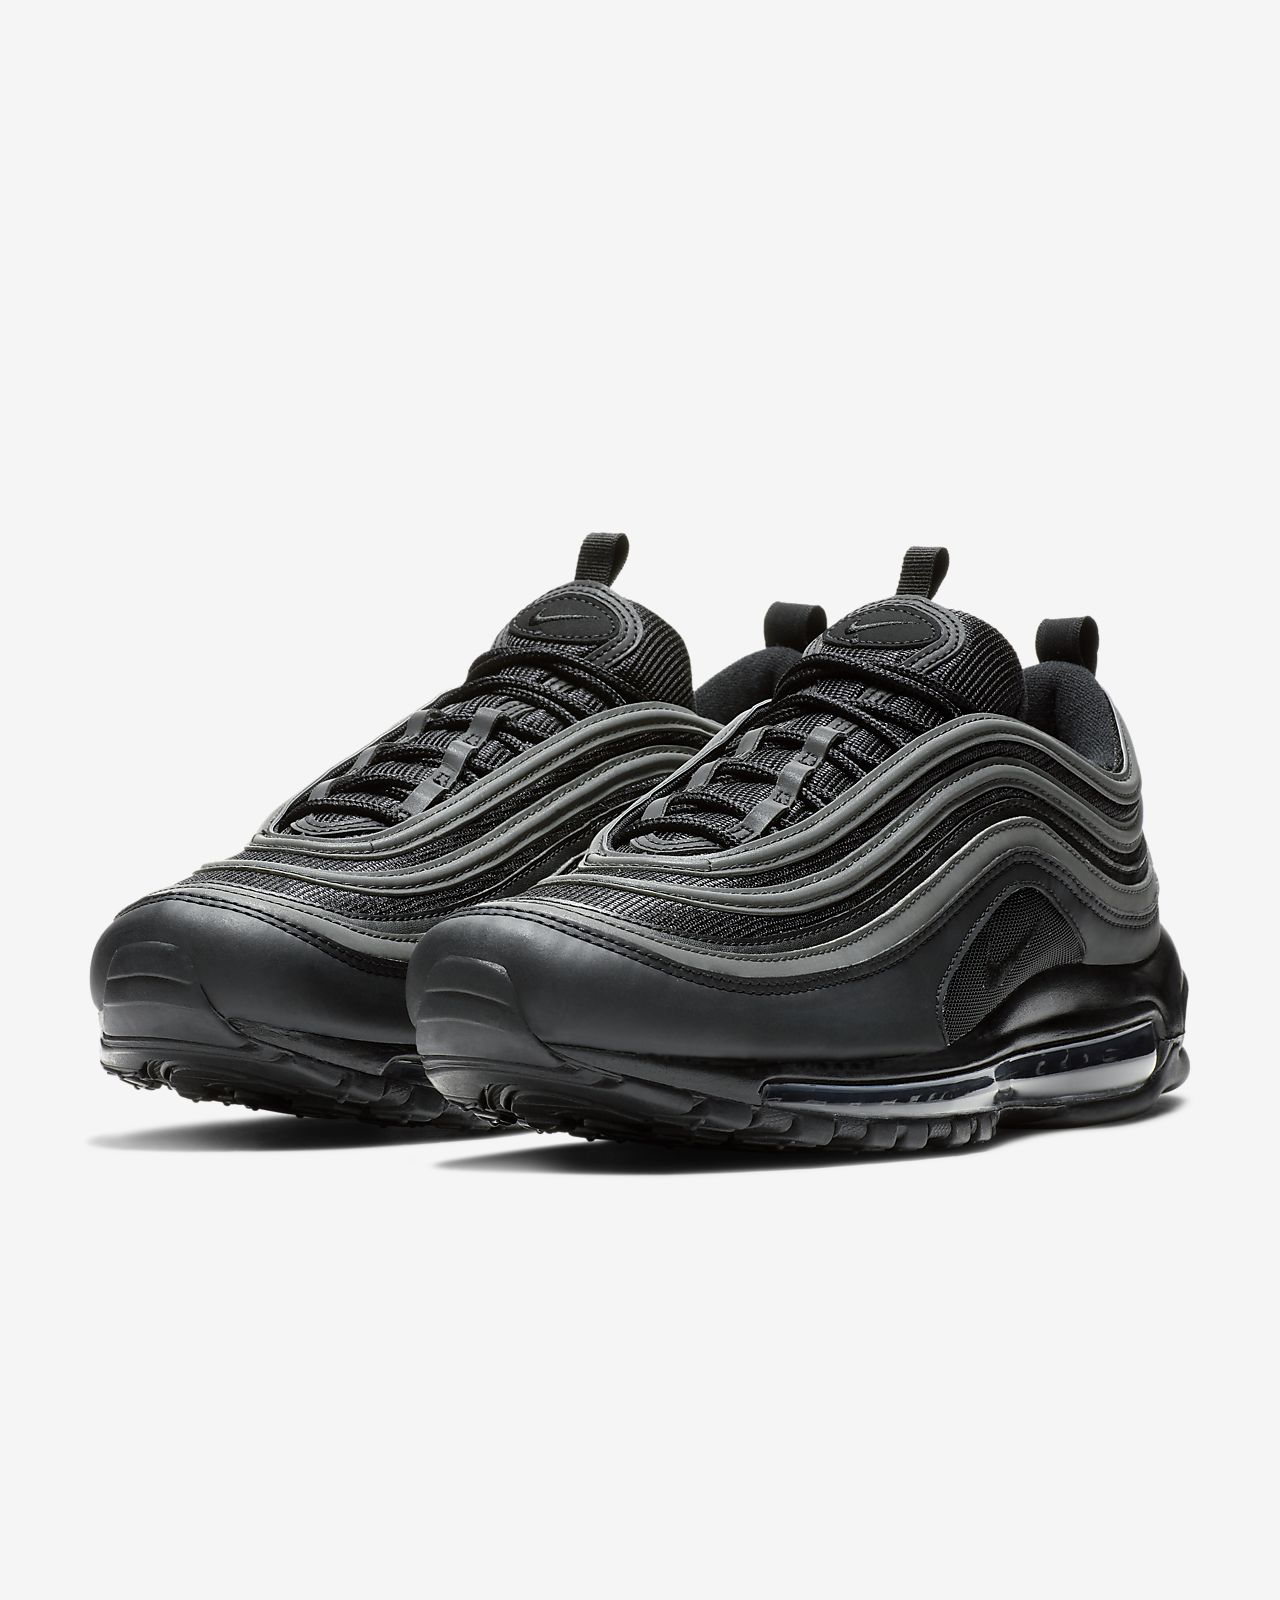 new concept 2b250 3ad88 ... Nike Air Max 97 Herrenschuh